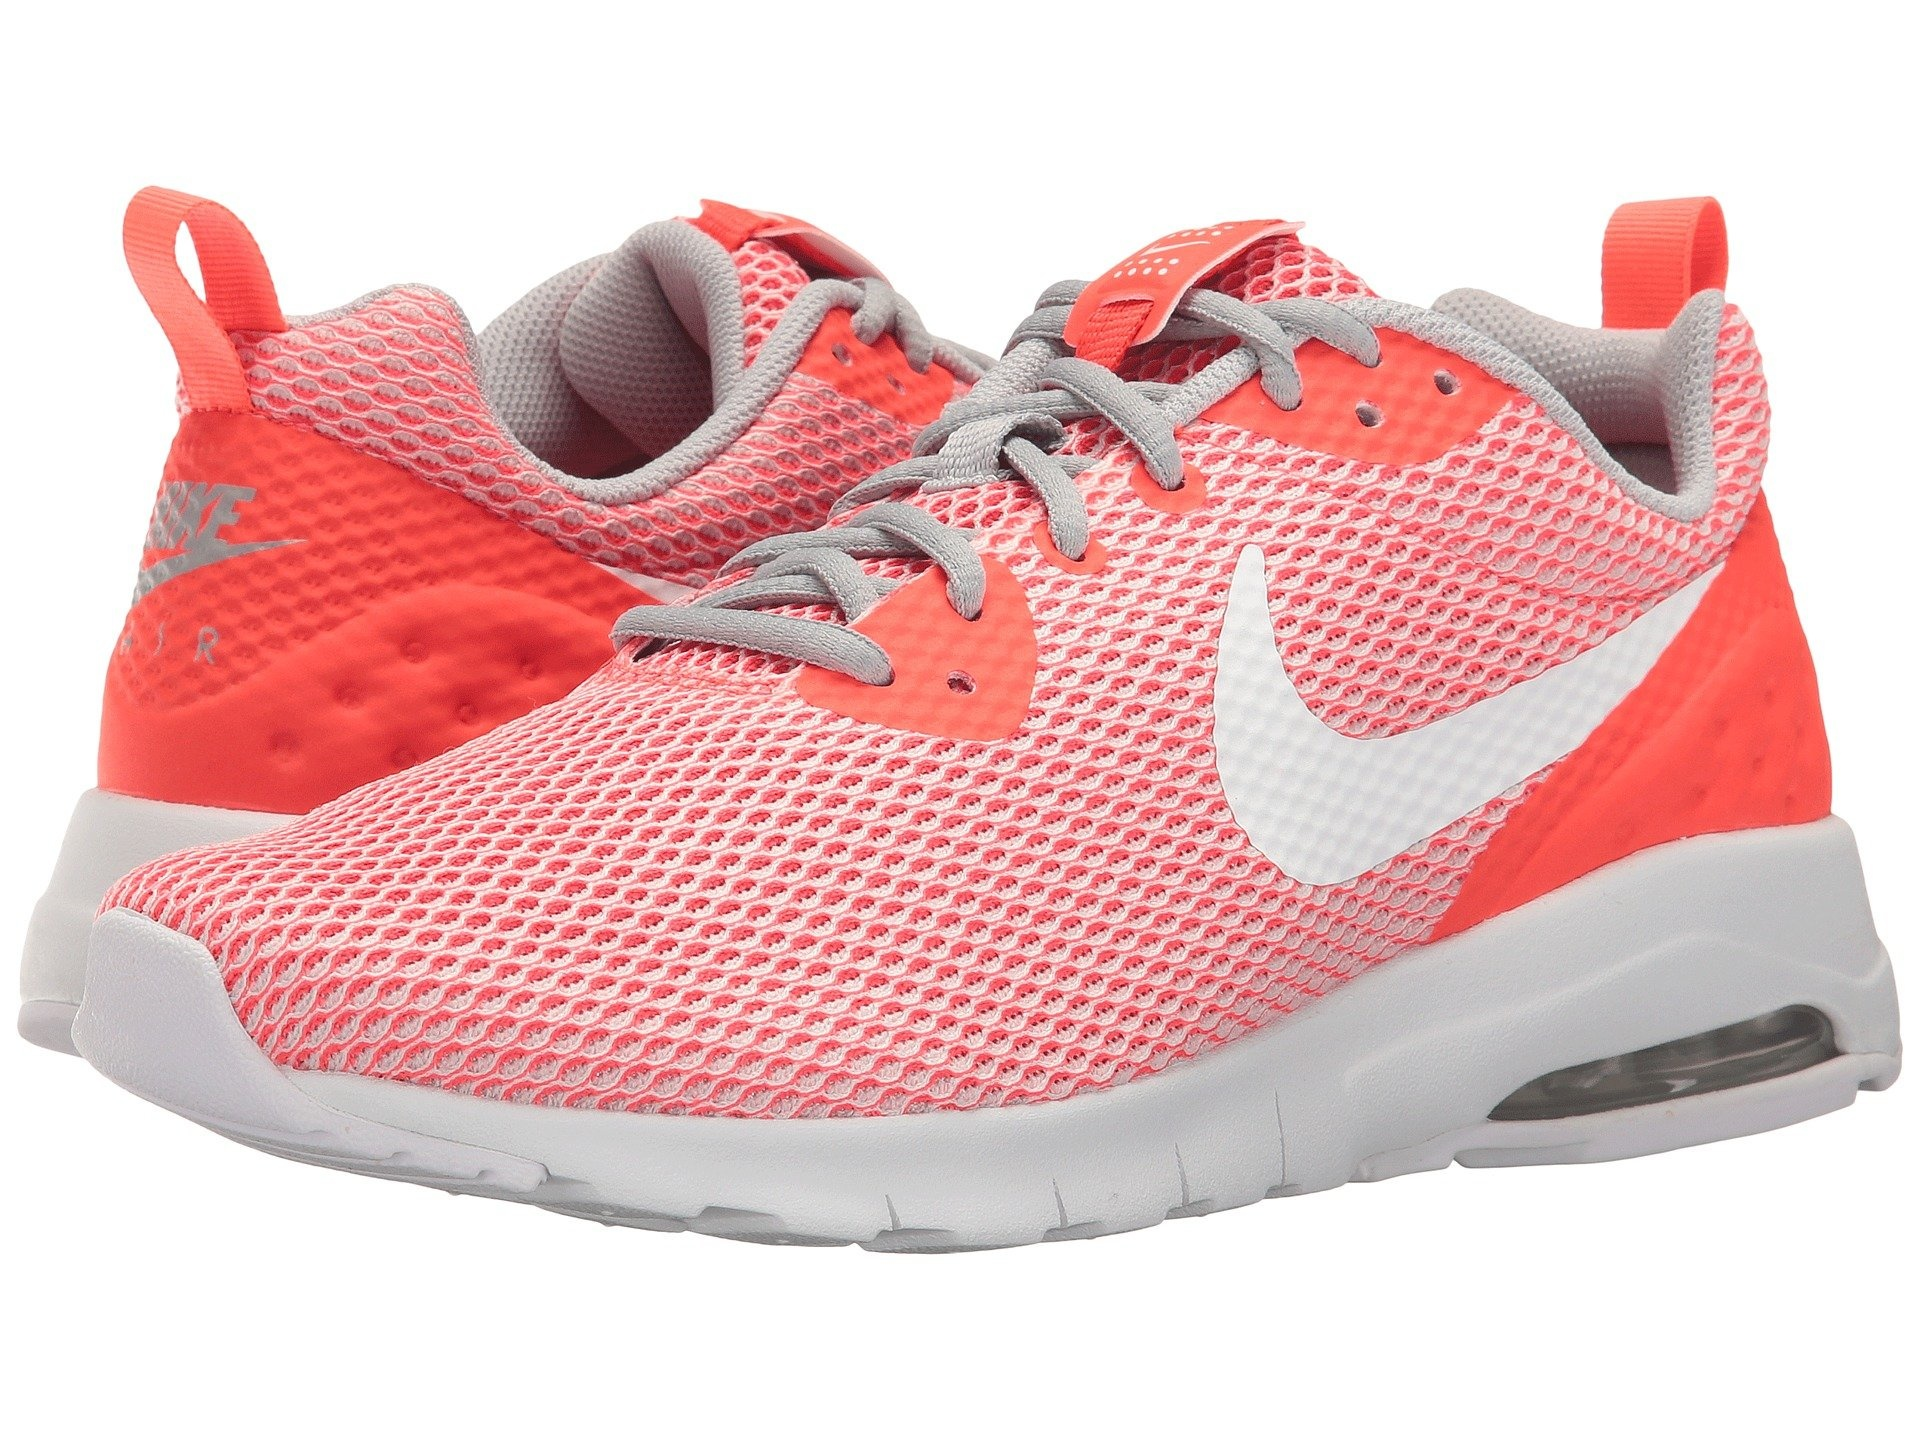 1c70a13d9e Qoo10 - Nike Air Max Motion Low SE : Bags Shoes & Accessories